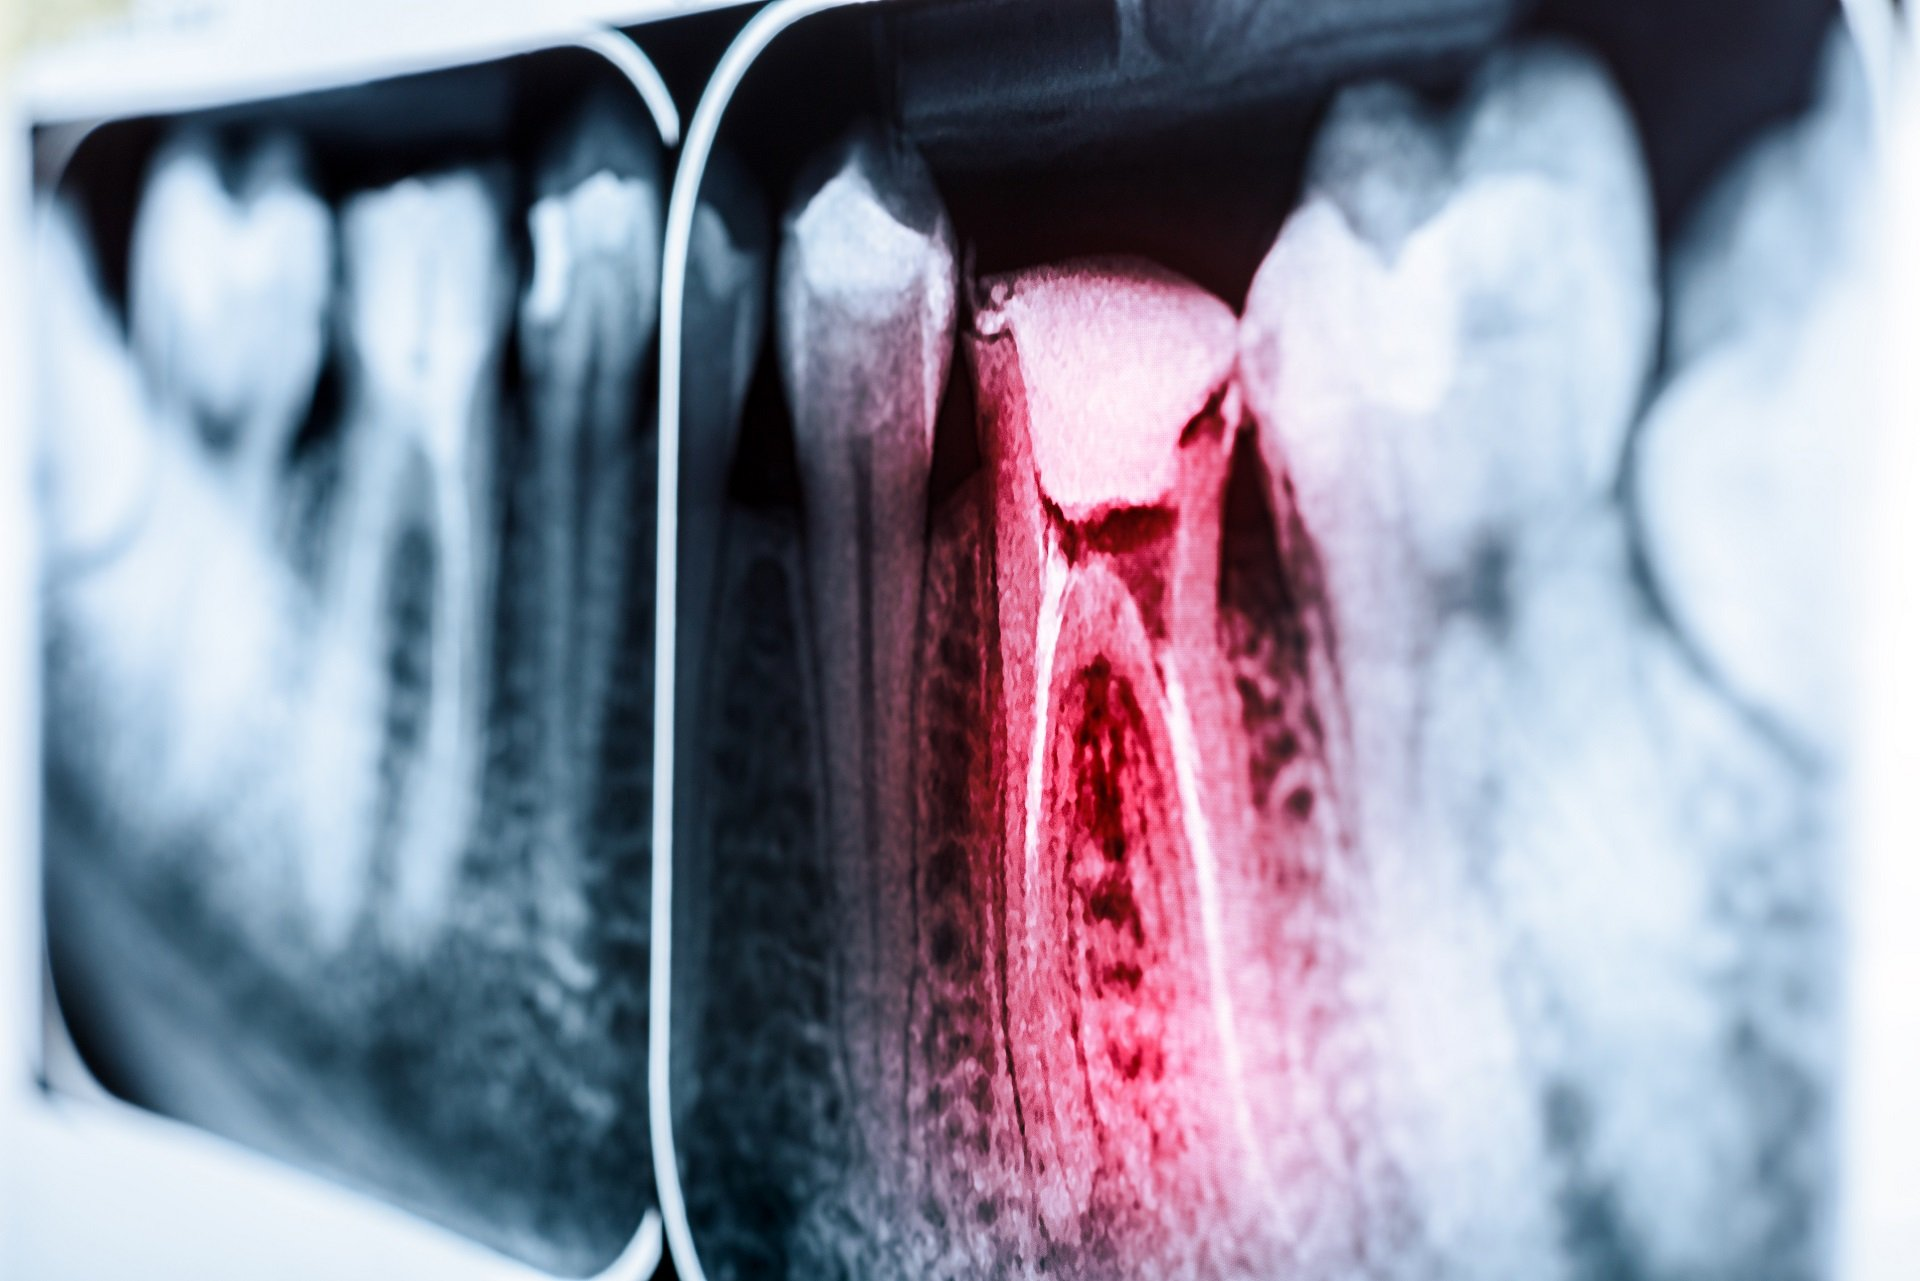 infected-tooth-XRay-root-canal-procedure